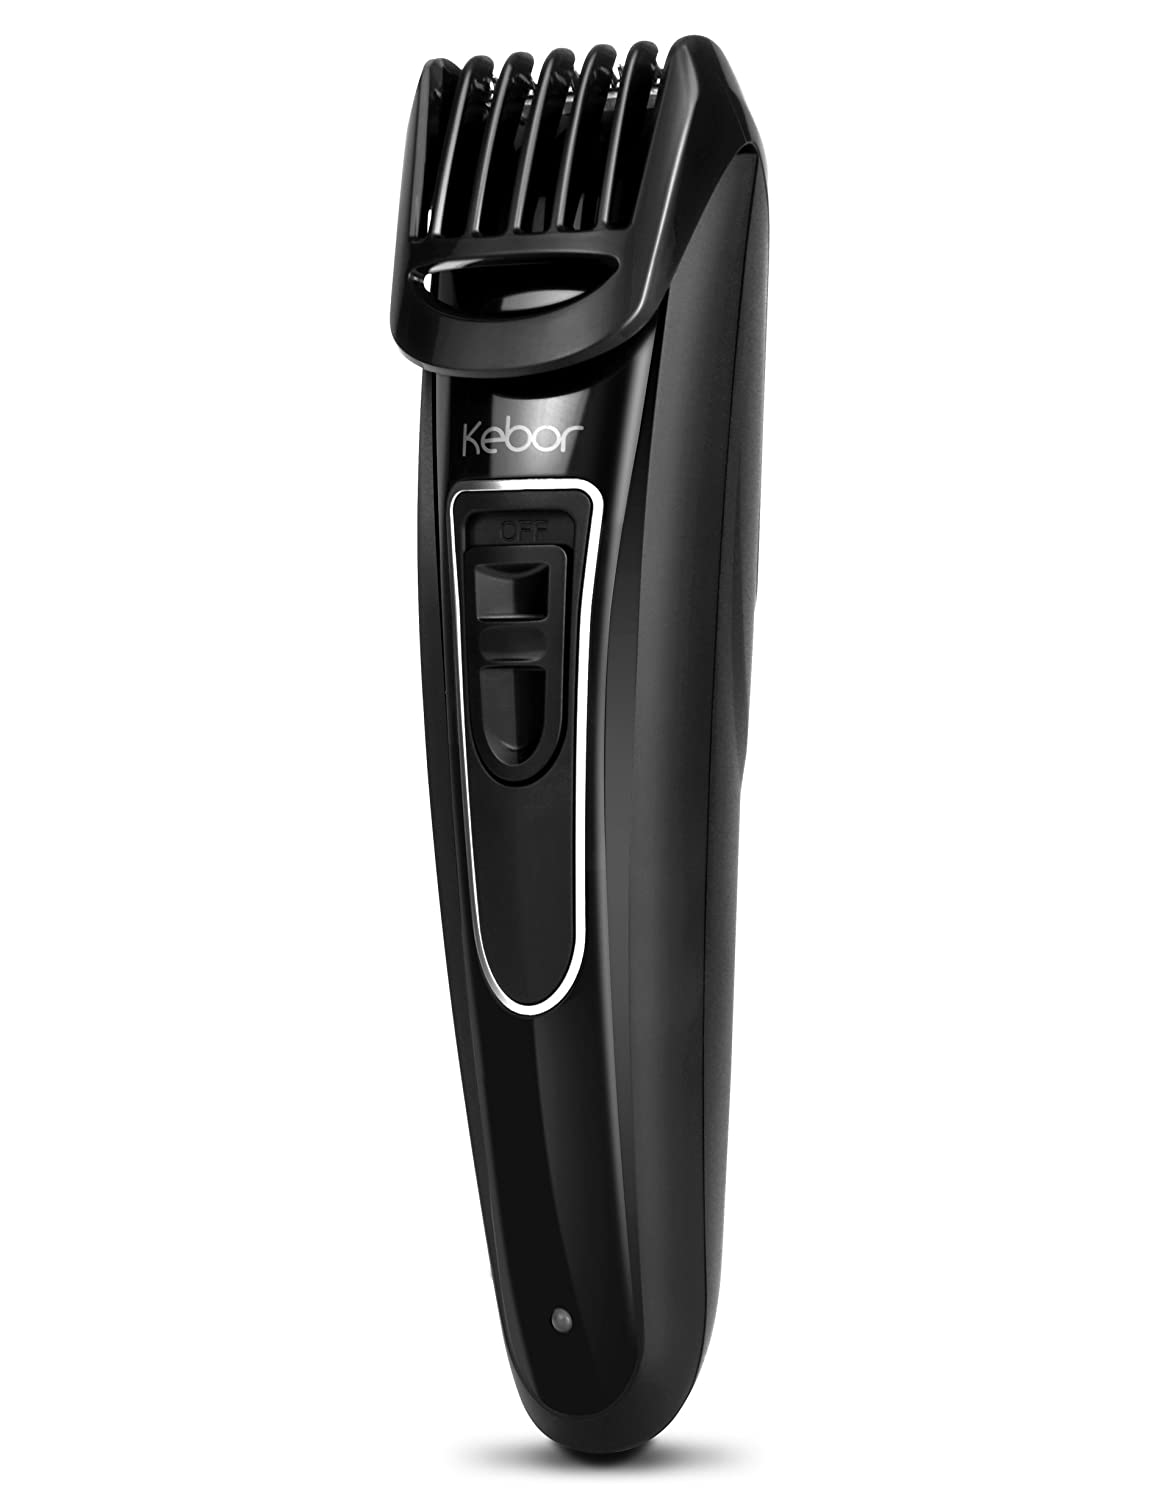 Beard Trimmer for Men, Kebor Hair Grooming Kit Cordless with 9 Length Precision Settings, All-in-one Guard, Comb Lock, Men's Rechargeable Body Groomer 1000mAh HT4040